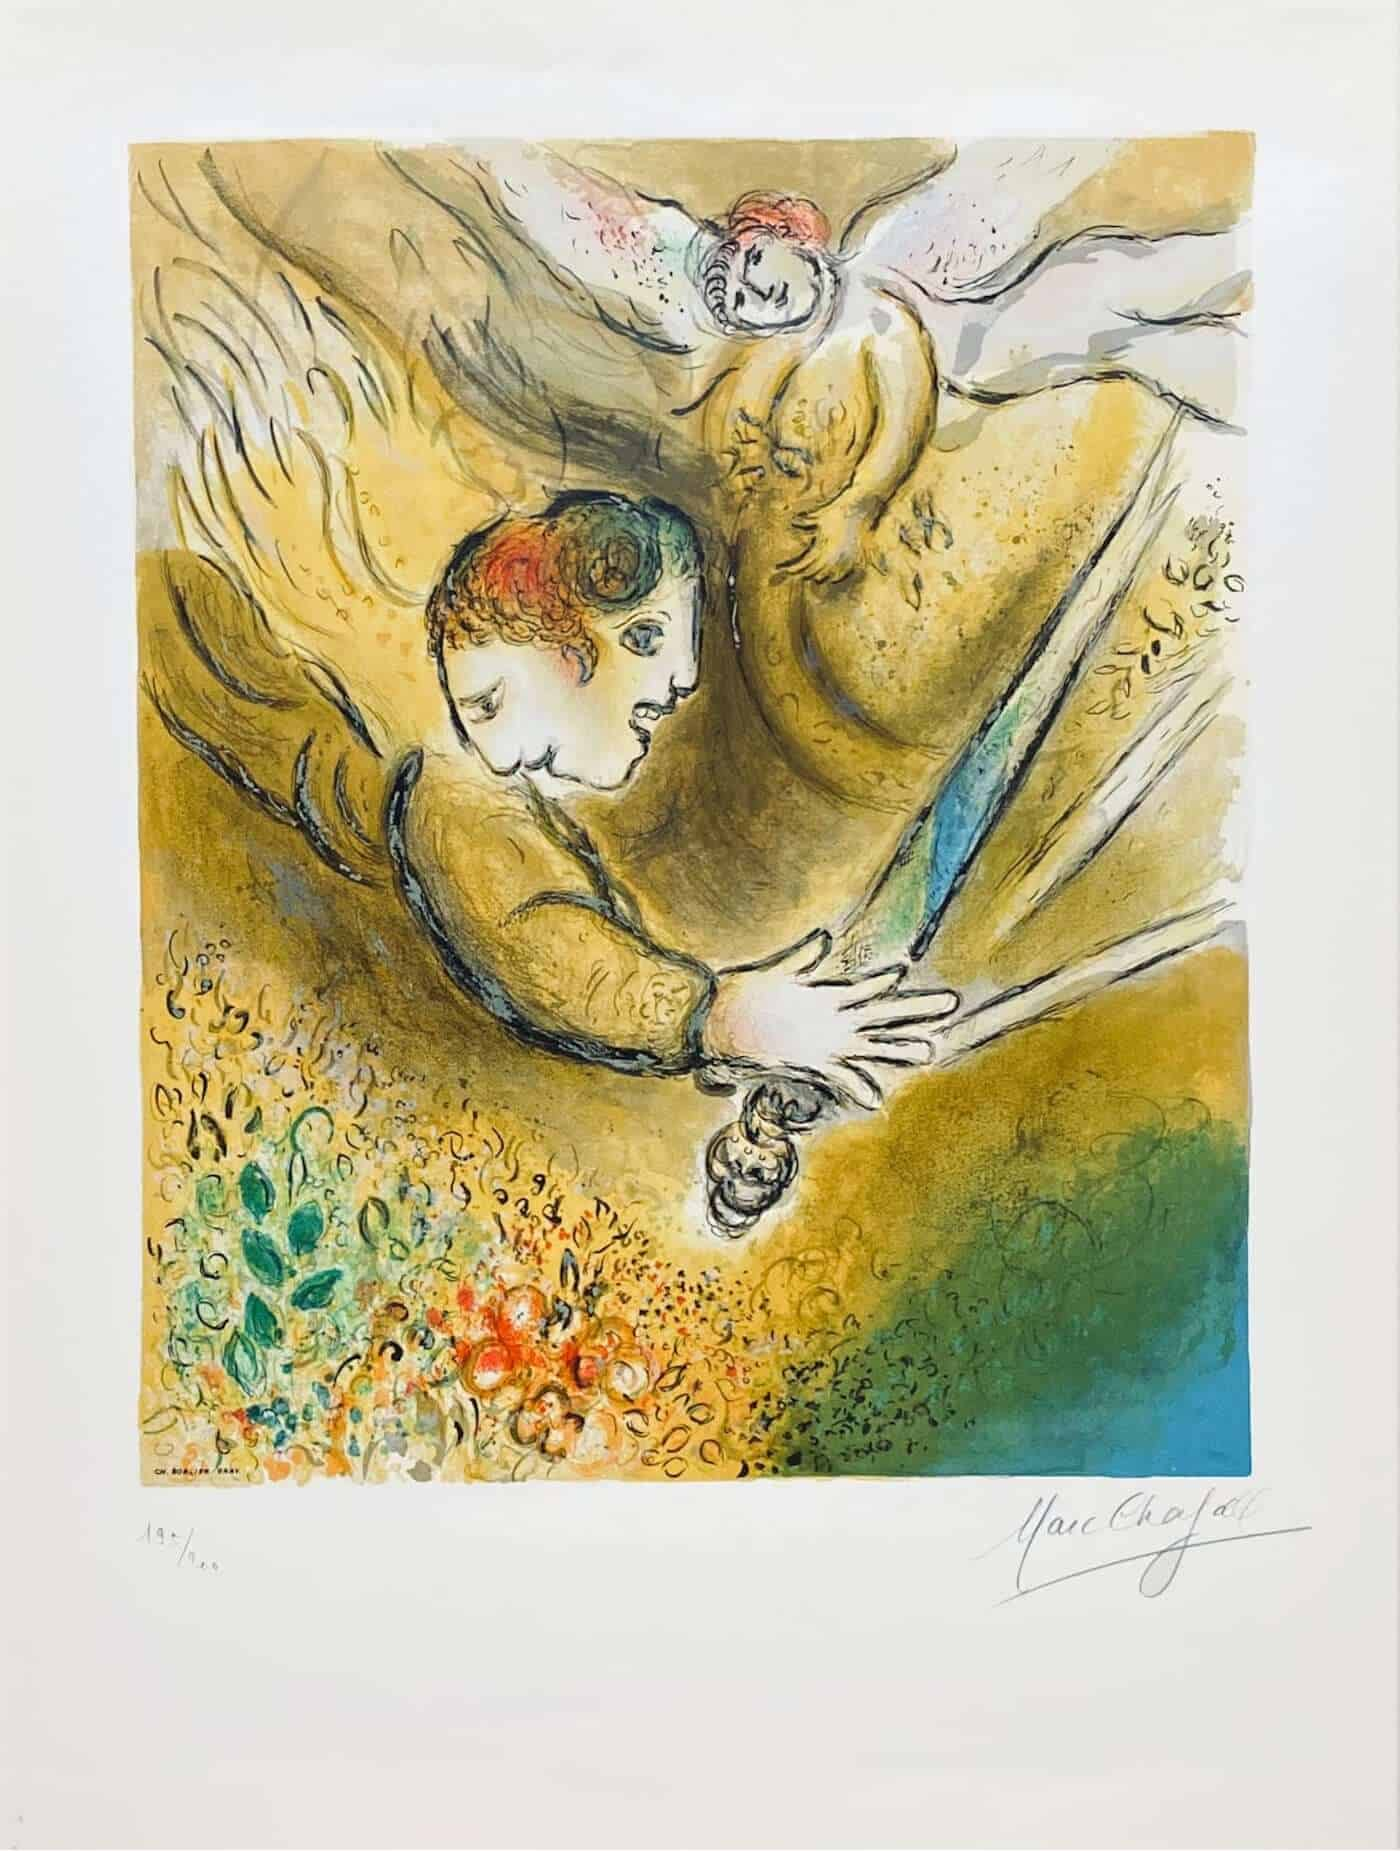 after Marc Chagall - L' ange du jugement at zebra one gallery